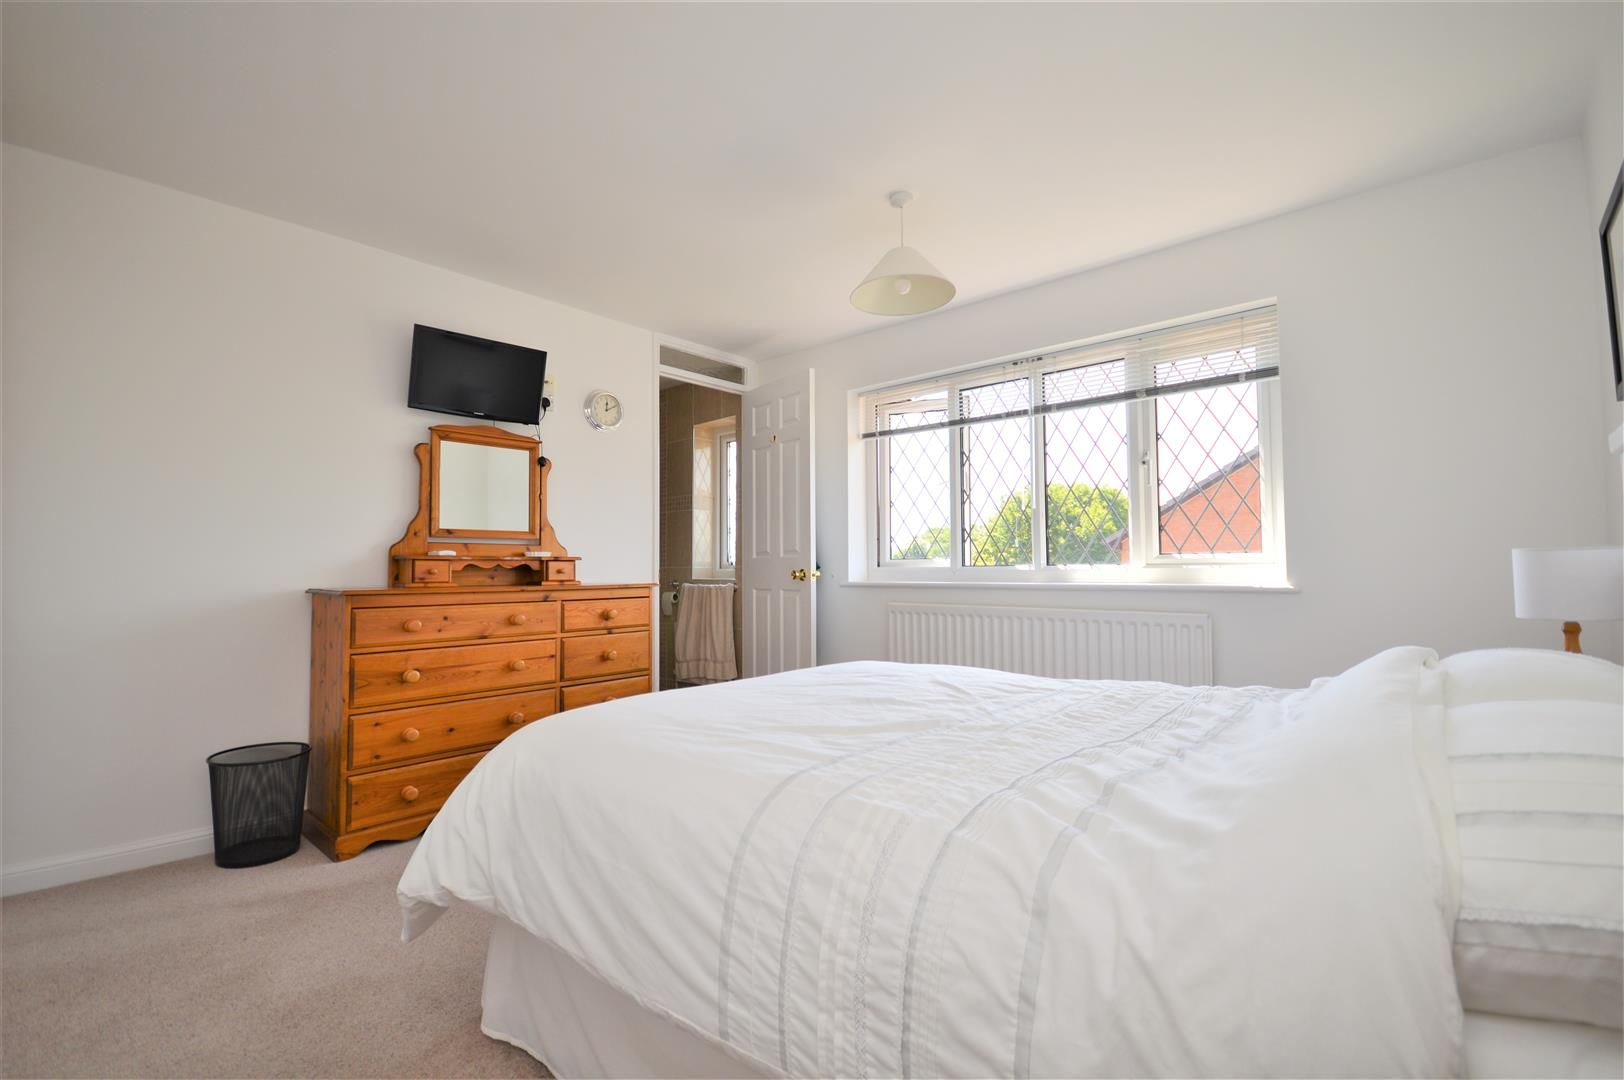 4 bed detached for sale in Hereford 11